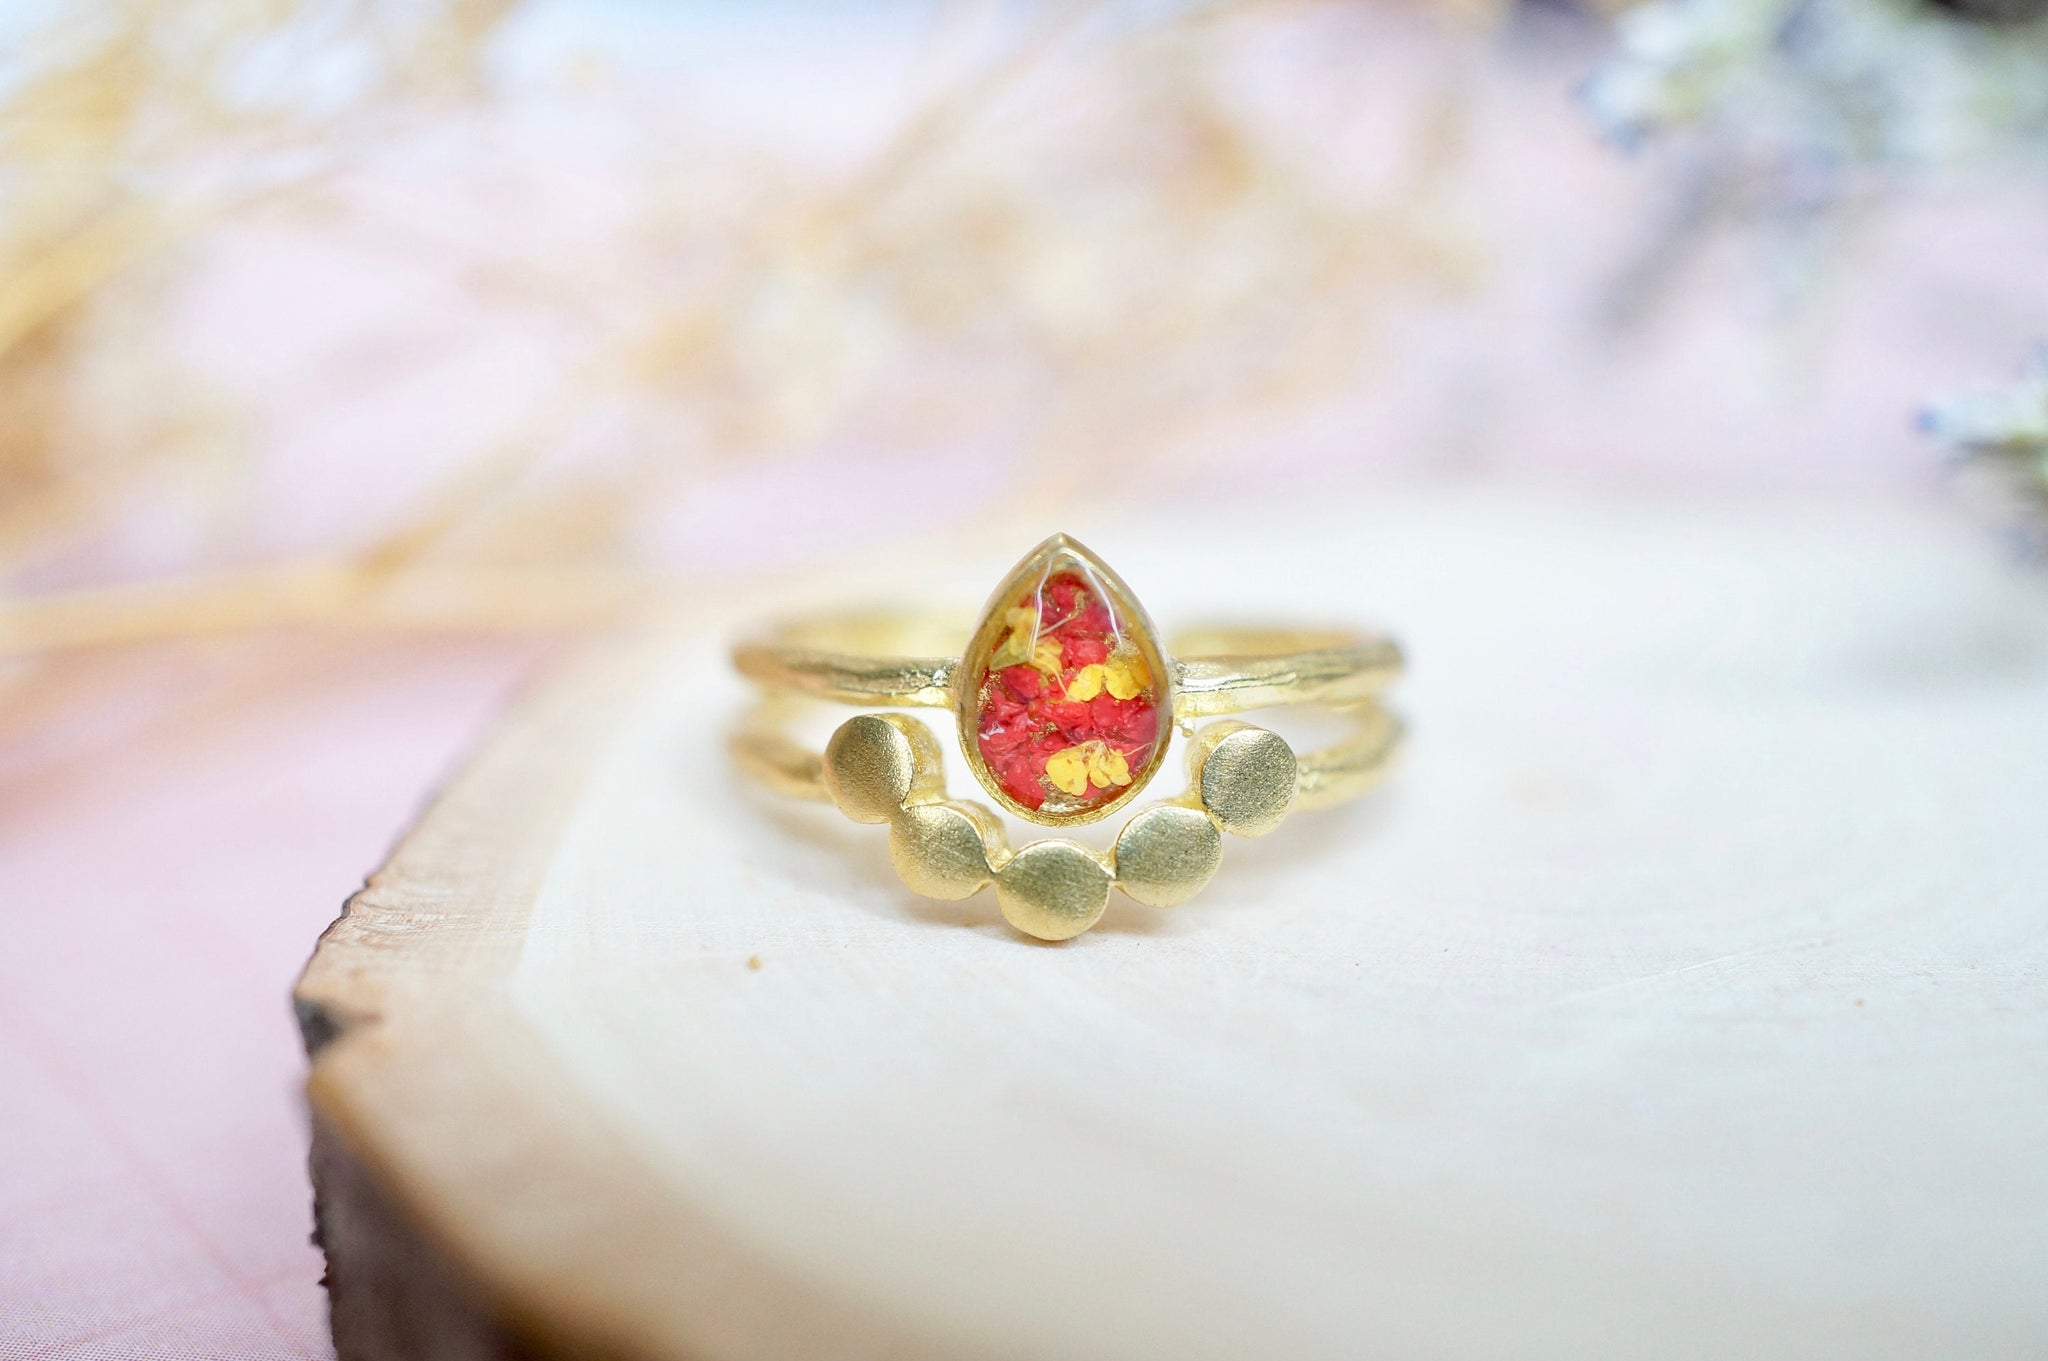 Real Pressed Flower and Resin Ring, Gold Teardrop in Red and Yellow